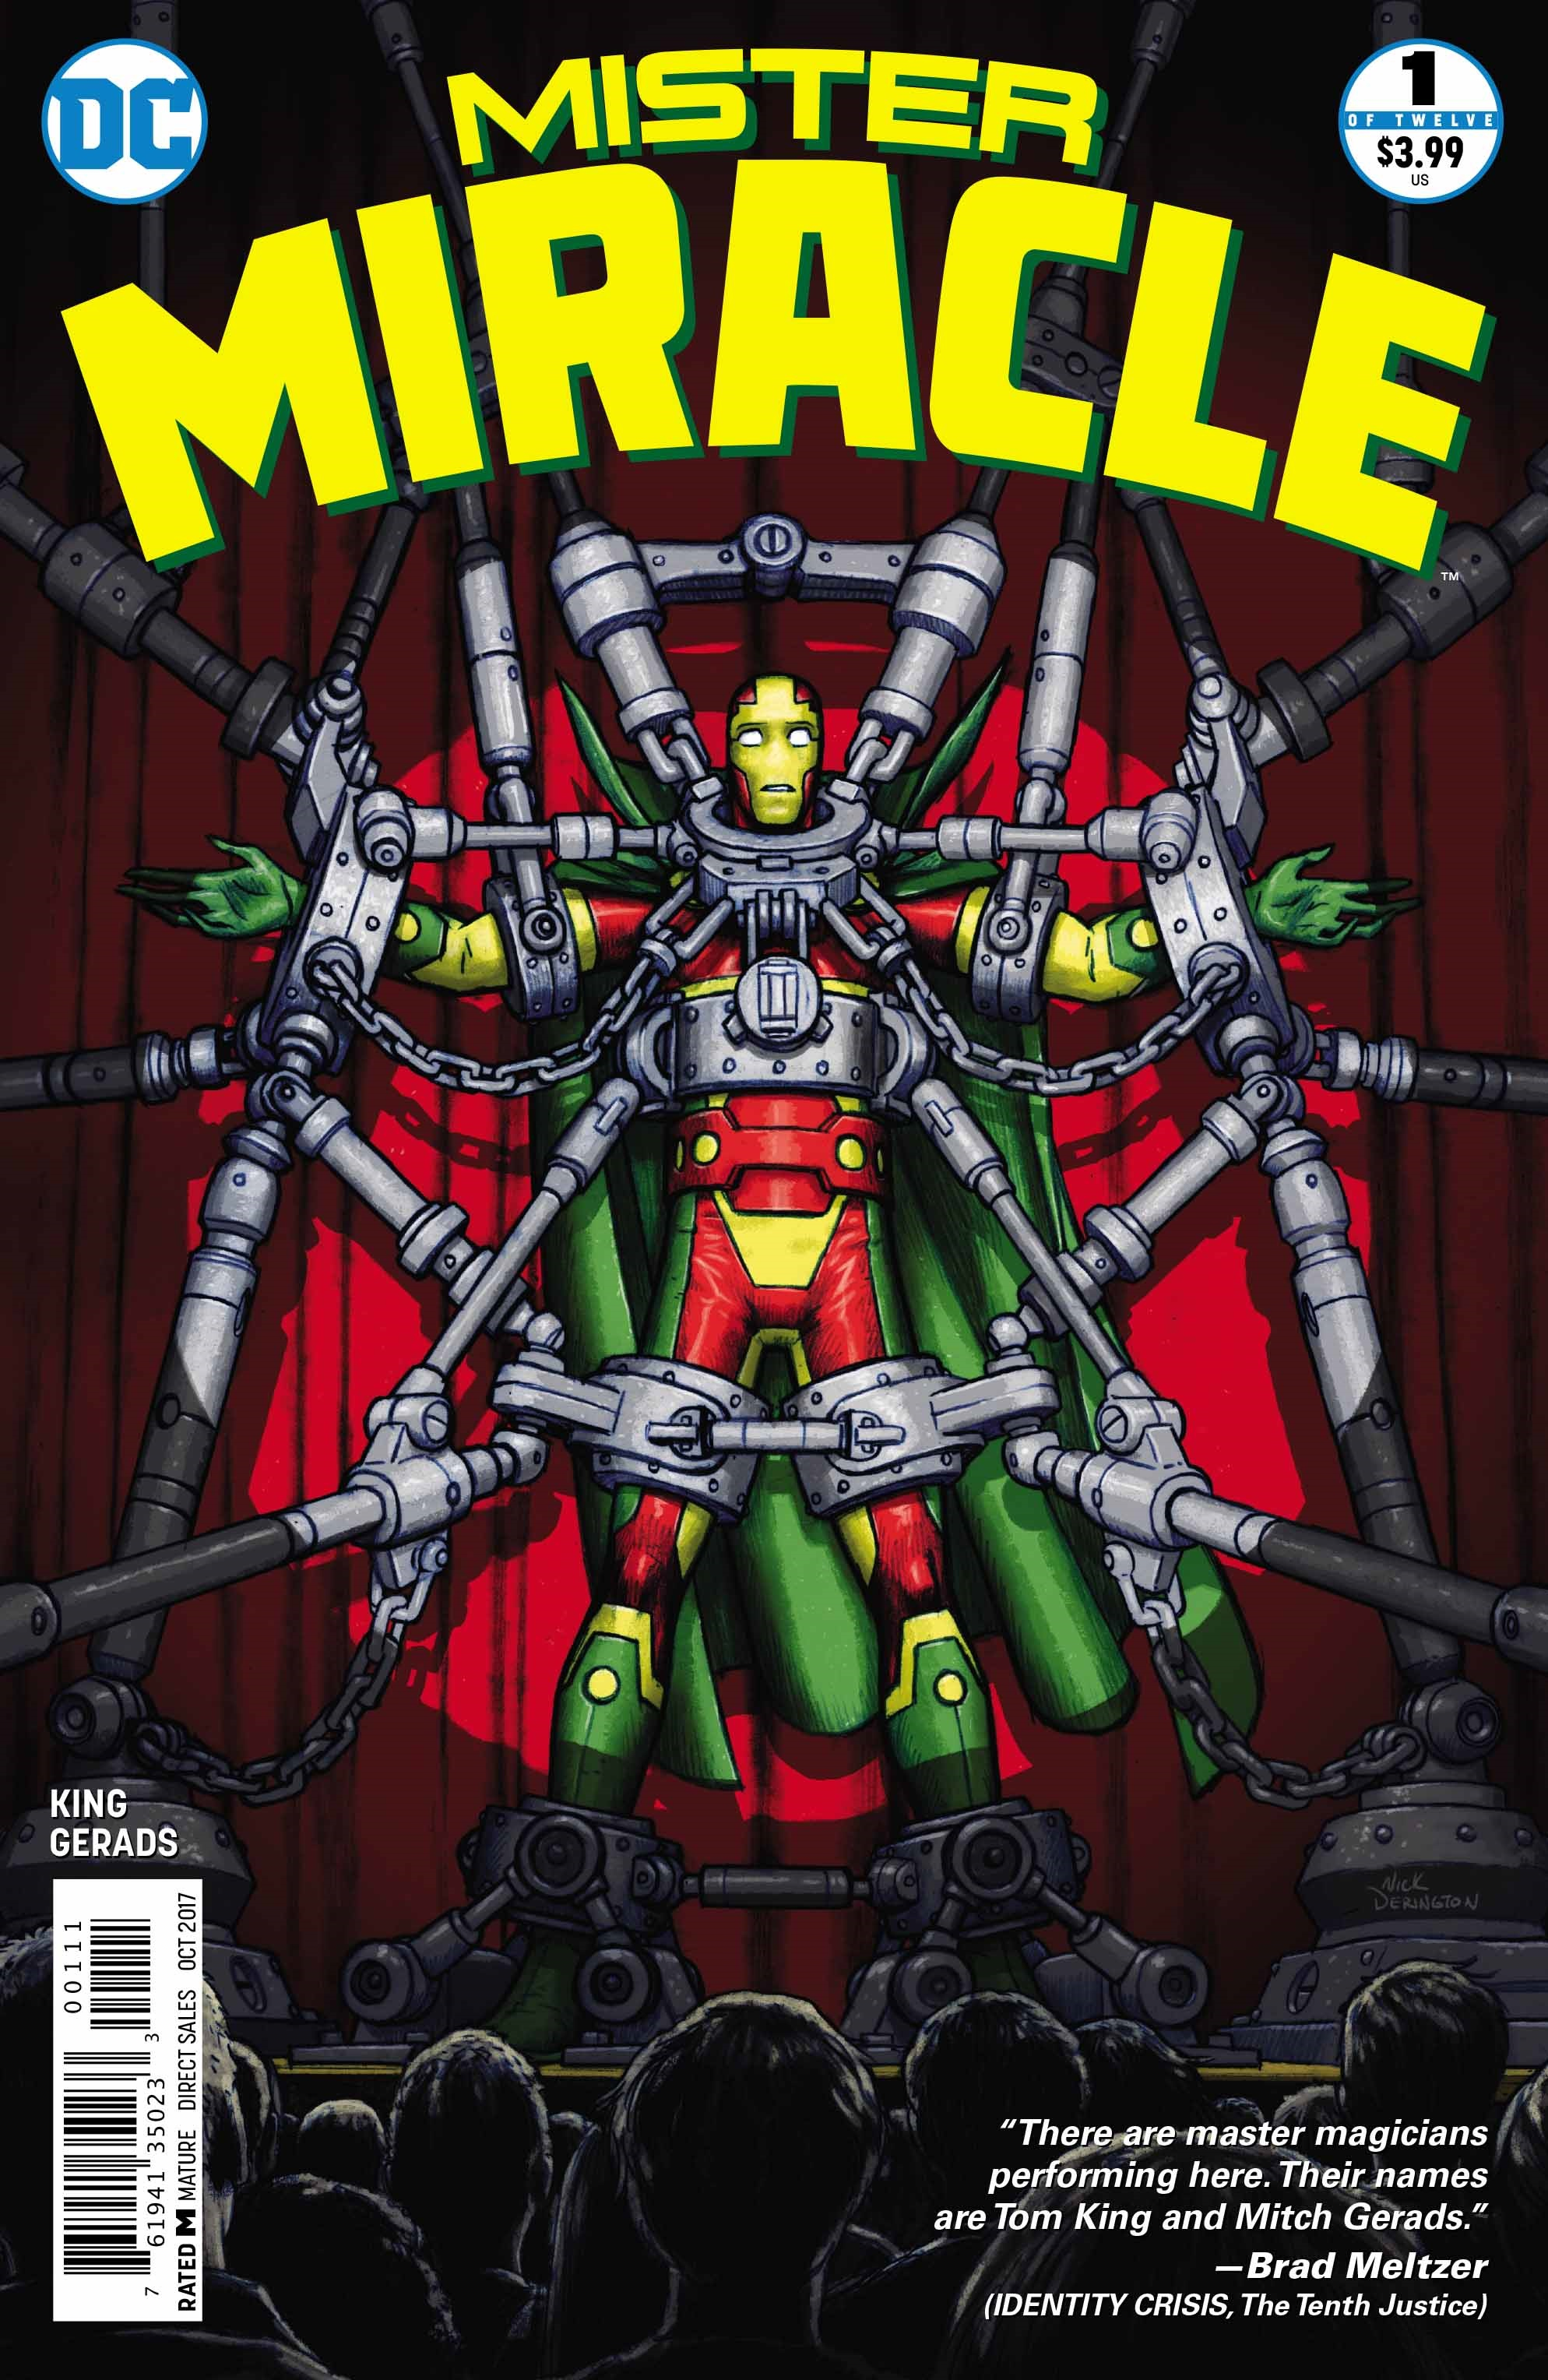 mISTER mIRACLE cOVER 1